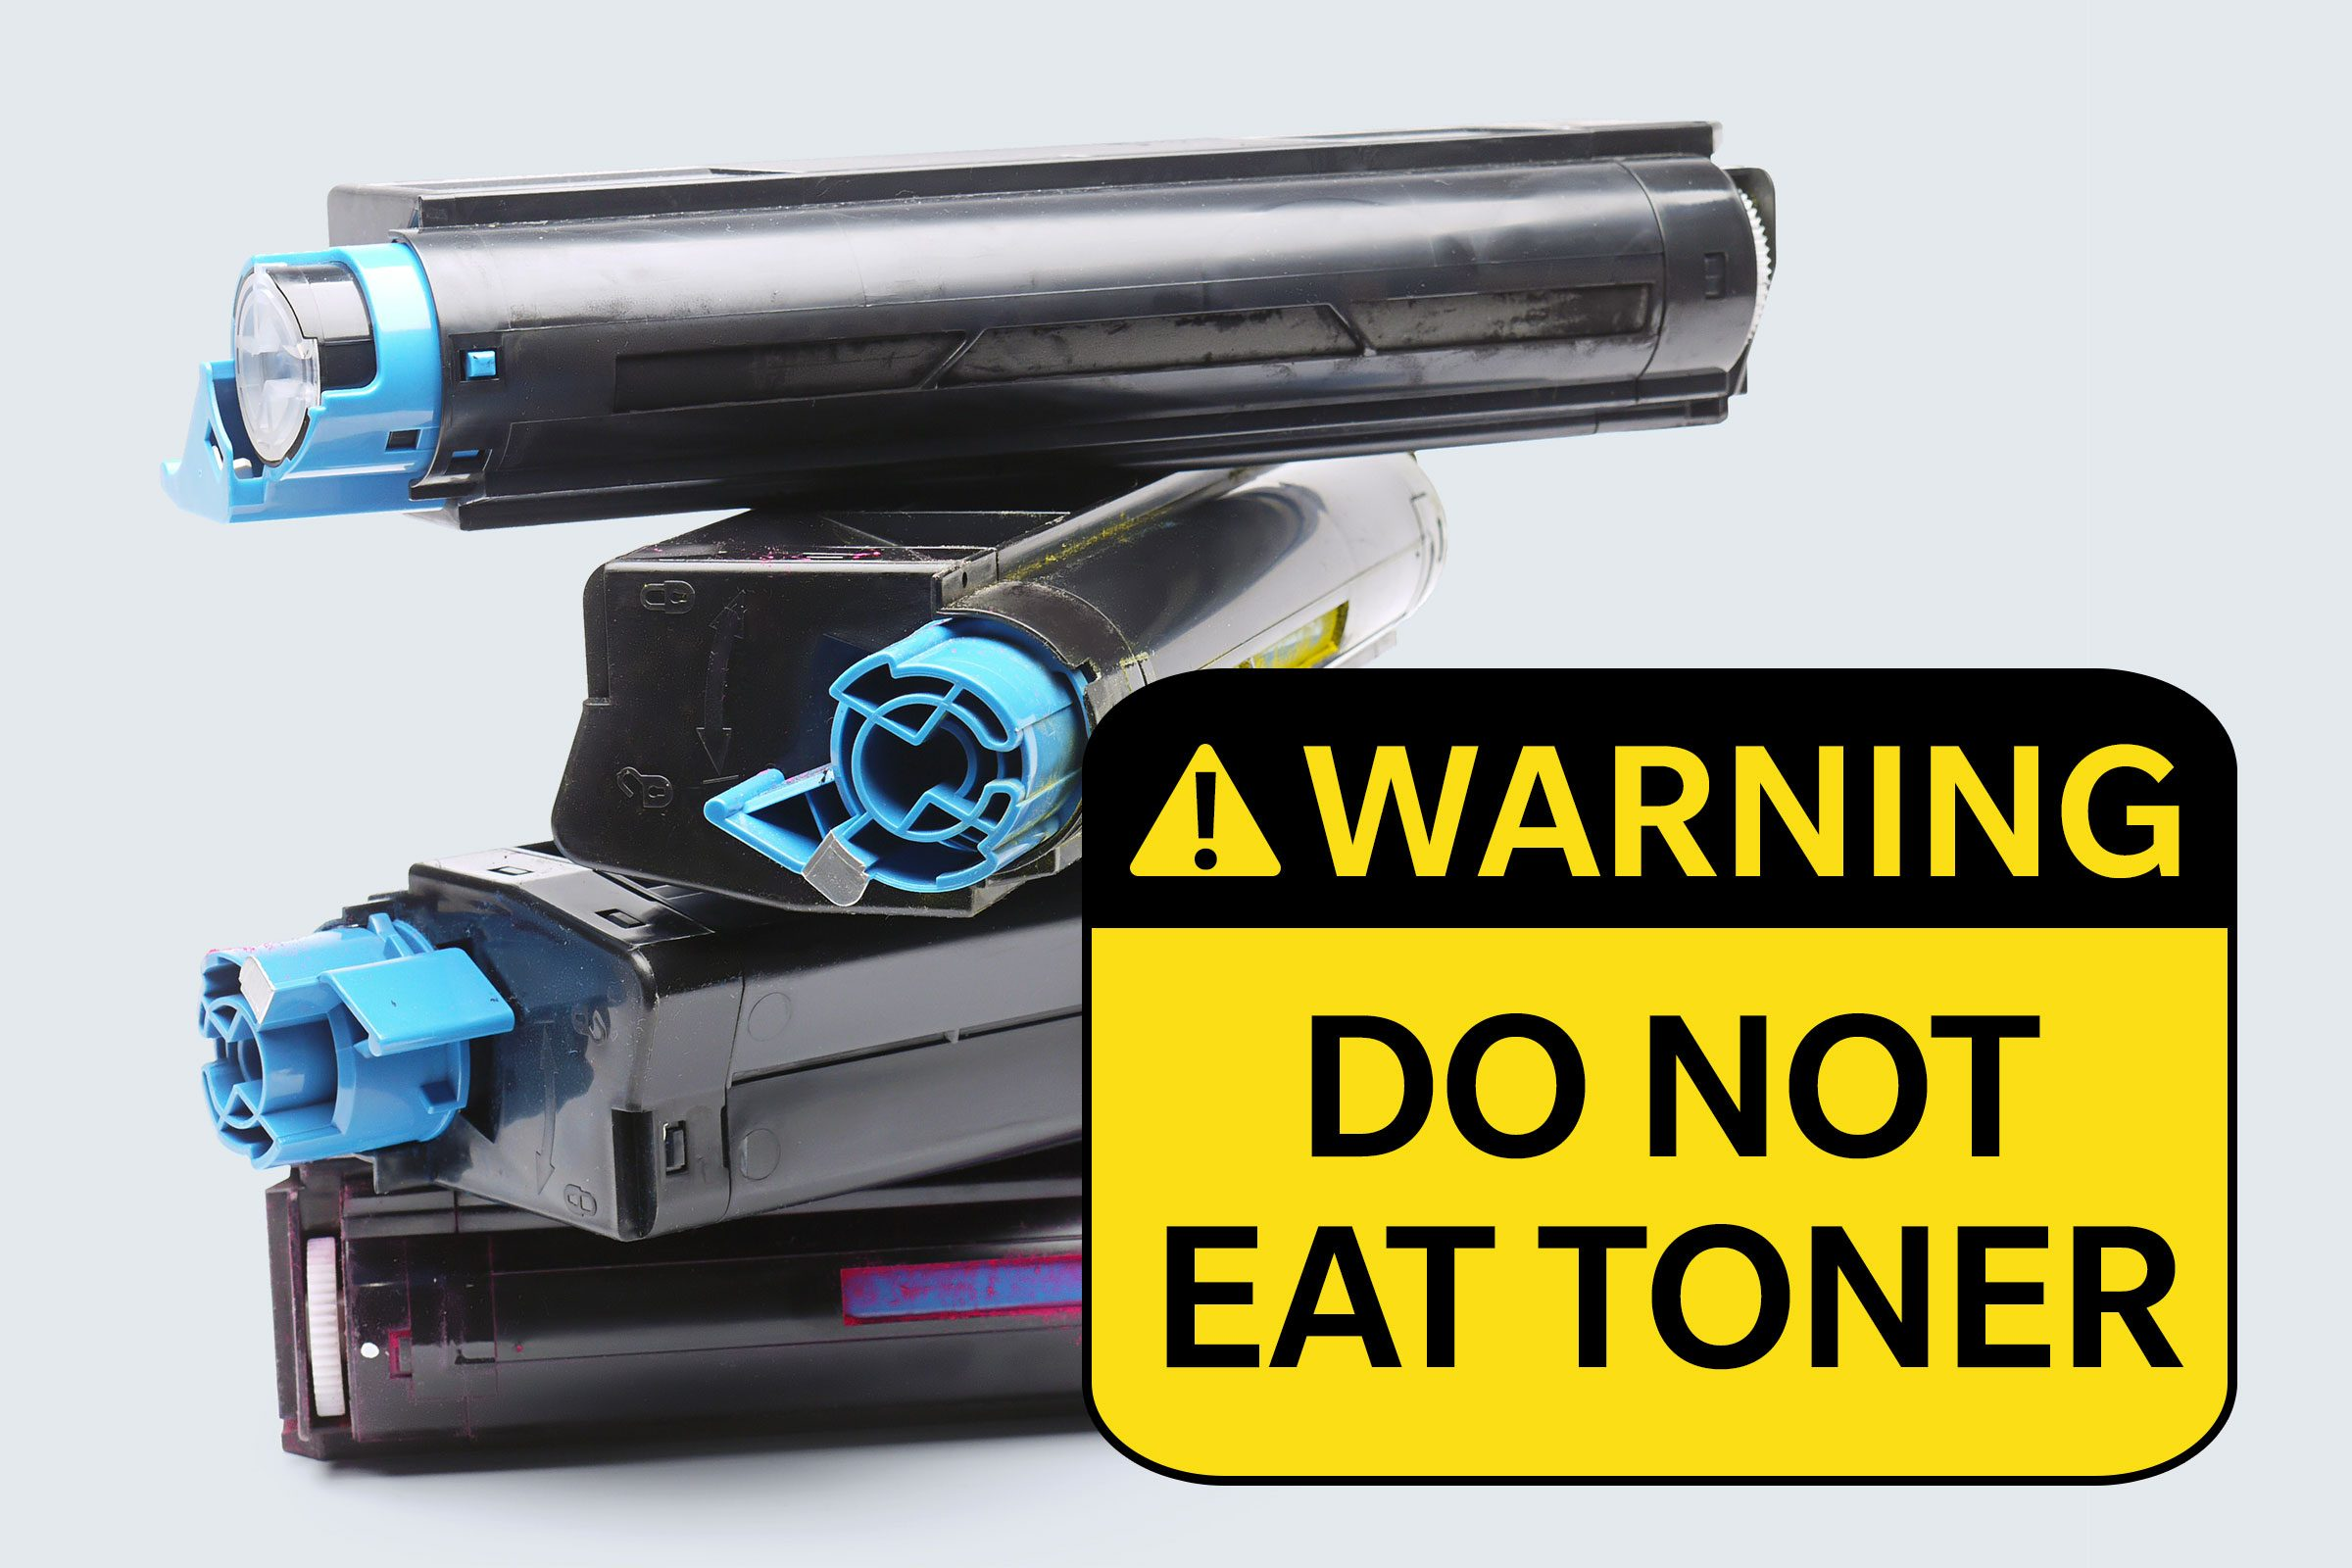 toner cartridges. warning: do not eat toner